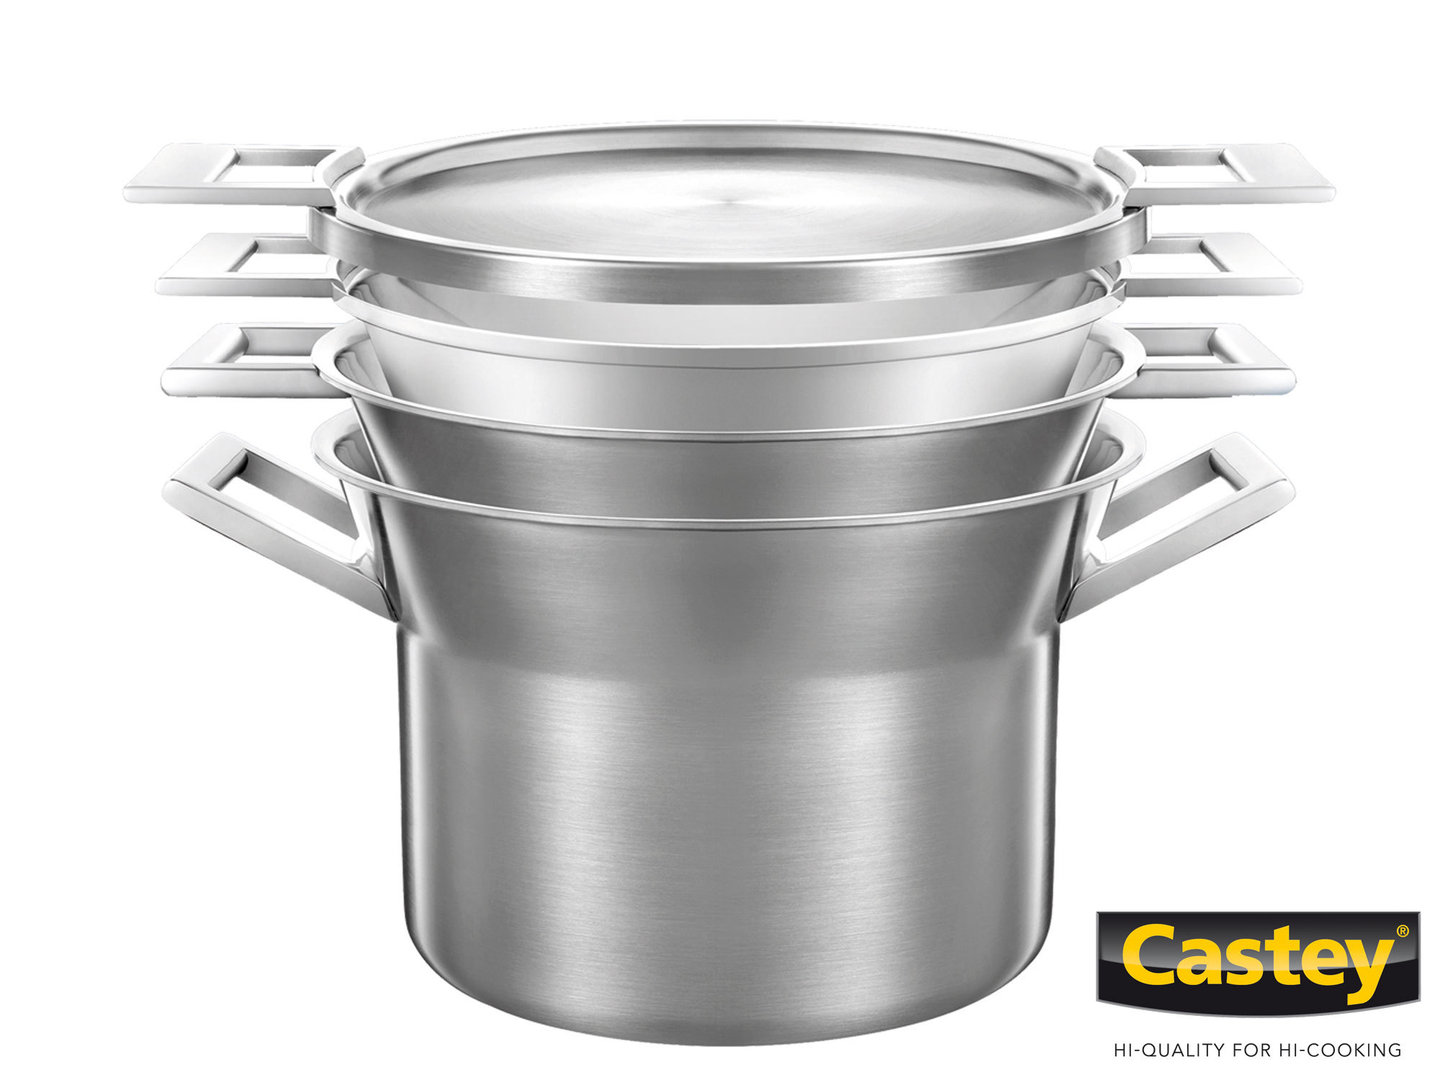 CASTEY 3-ply casserole set 24 cm ARTIC 4 pc with steamer insert nestable